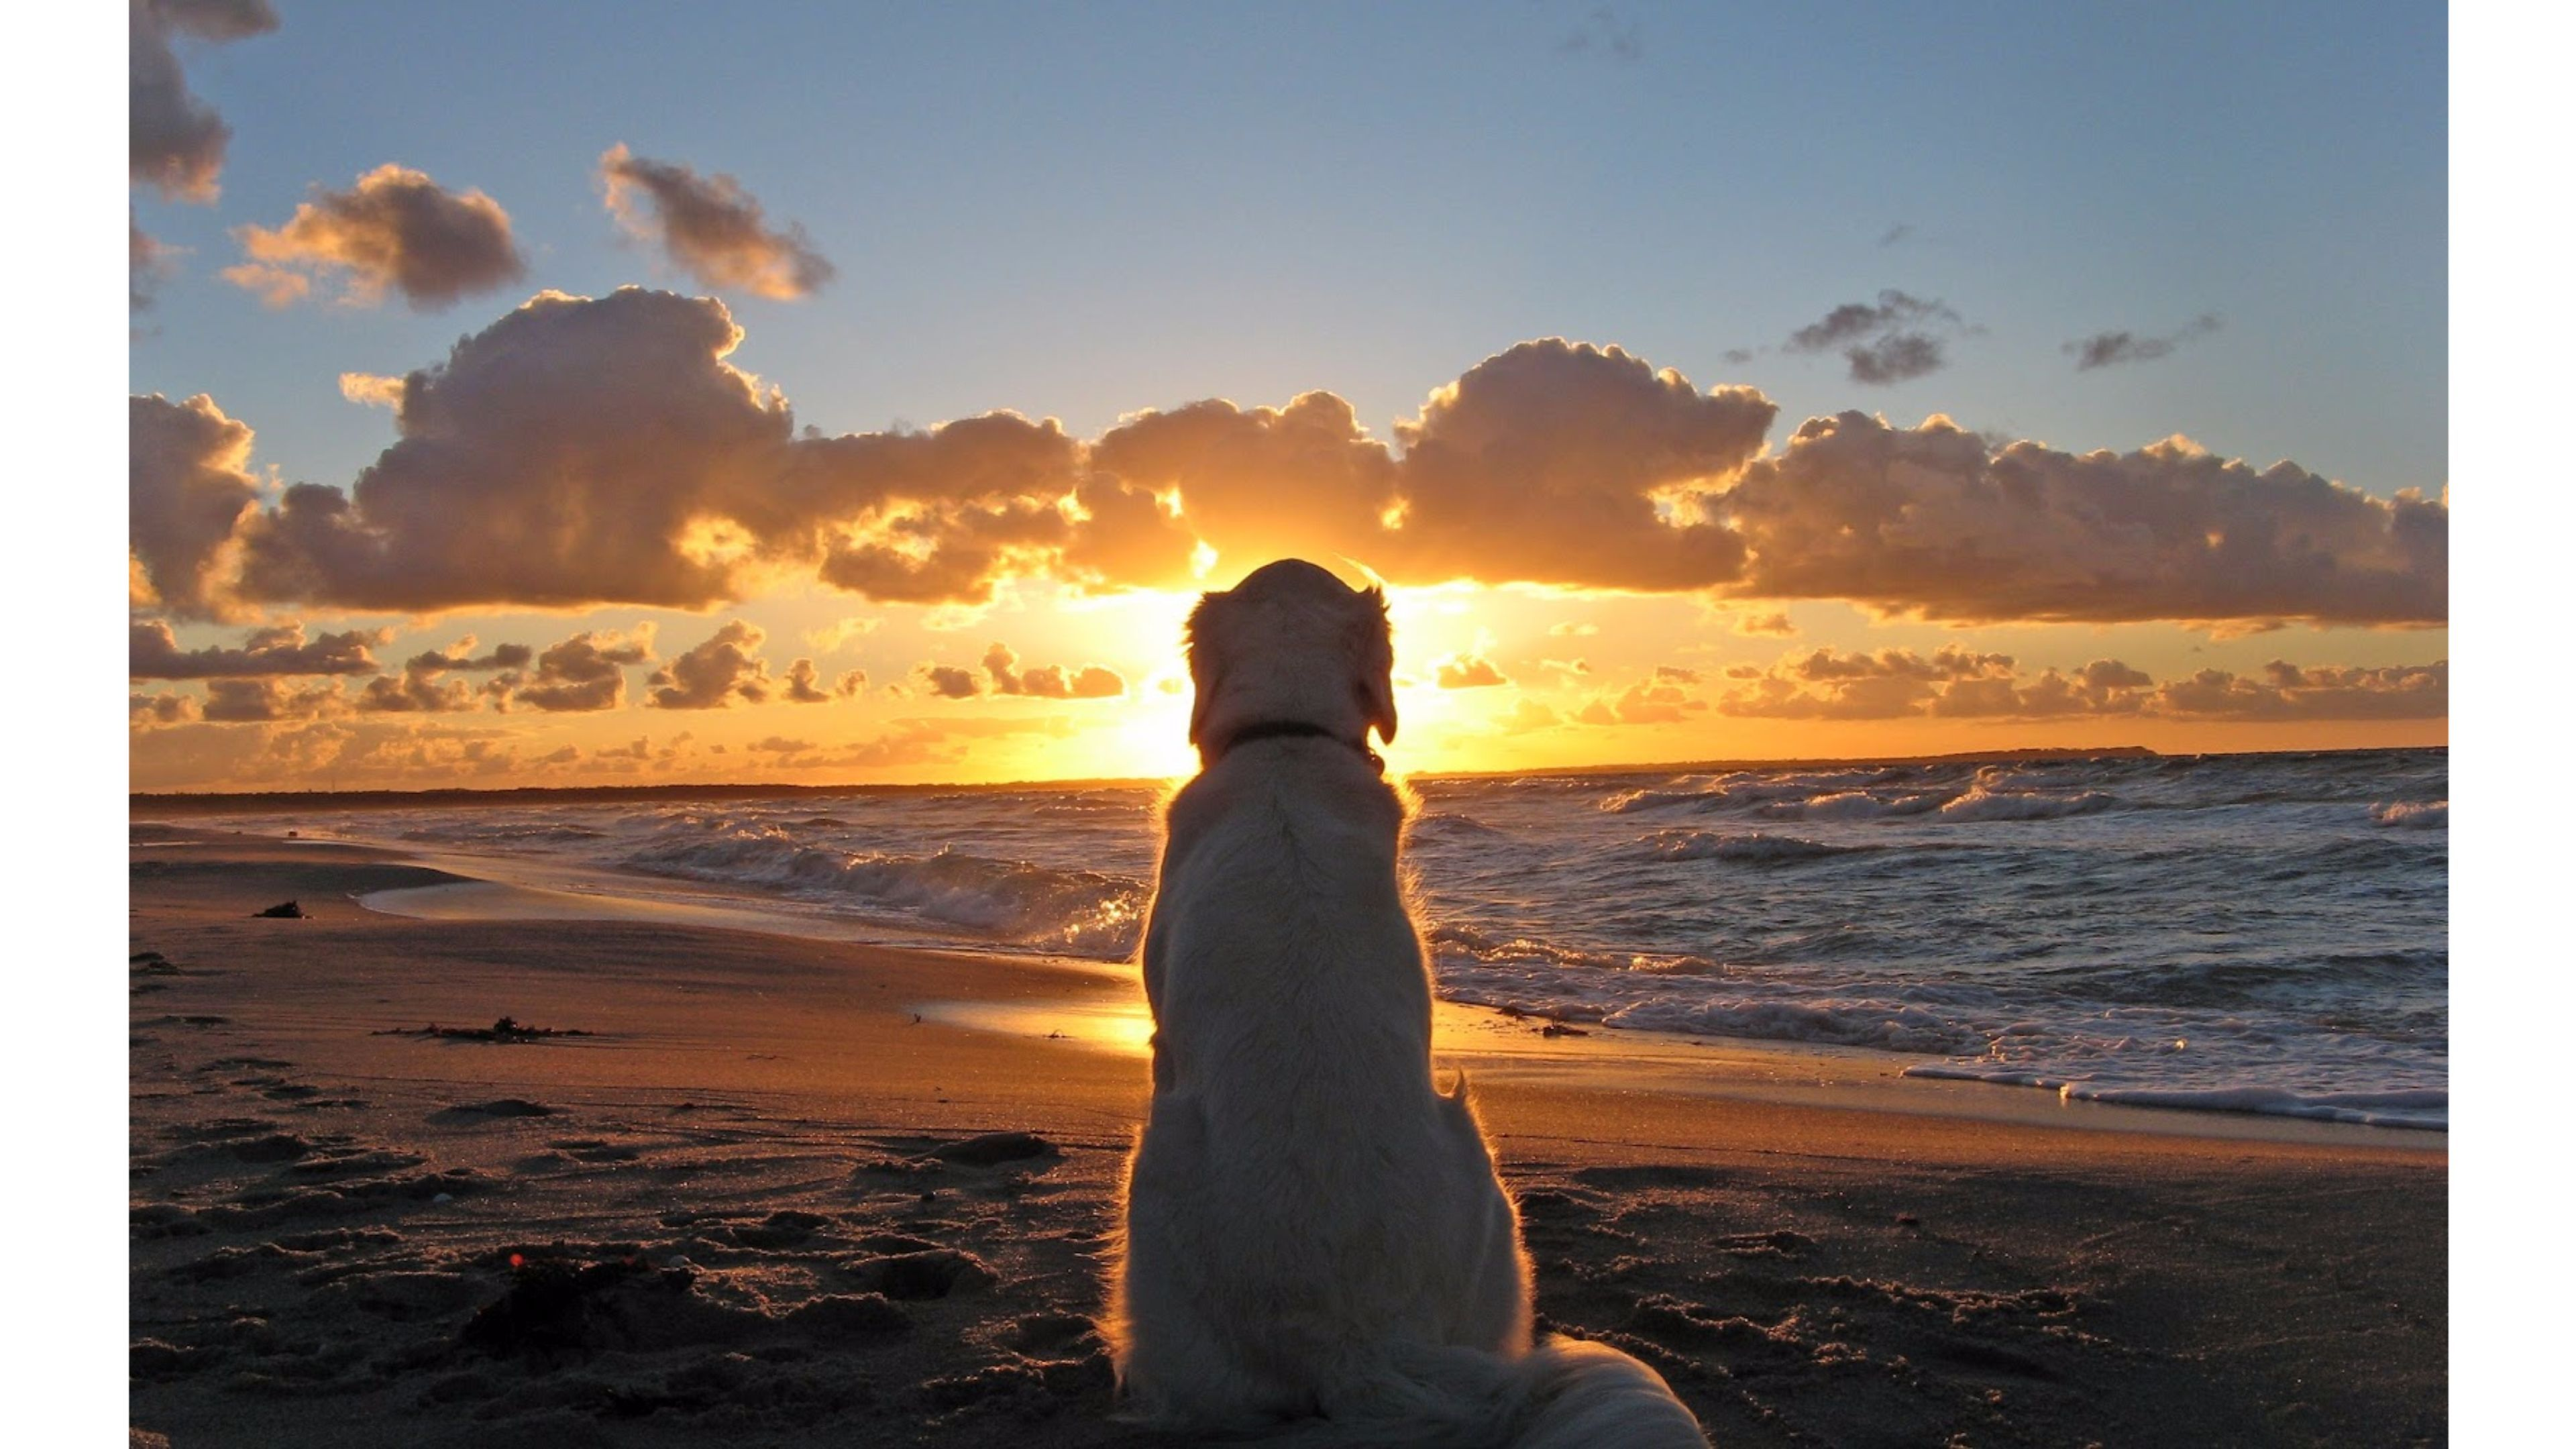 golden retriever dog seeing sunset photos